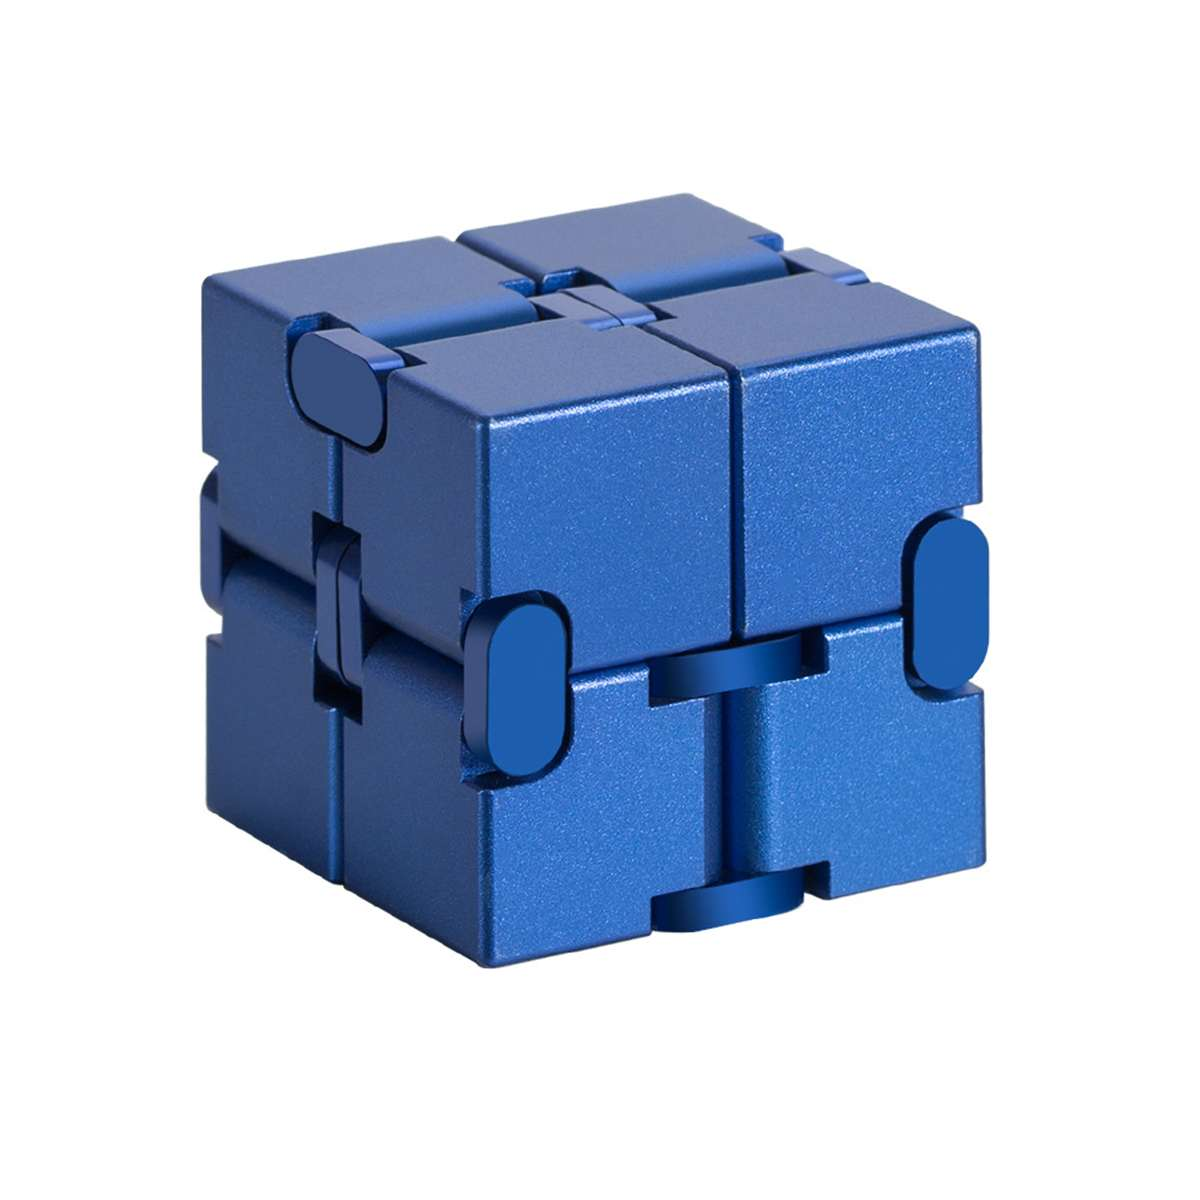 Relax Toy Infinit Cube Magic-Cube Stress Adults Relief-Blocks Finger-Anxiety Mini